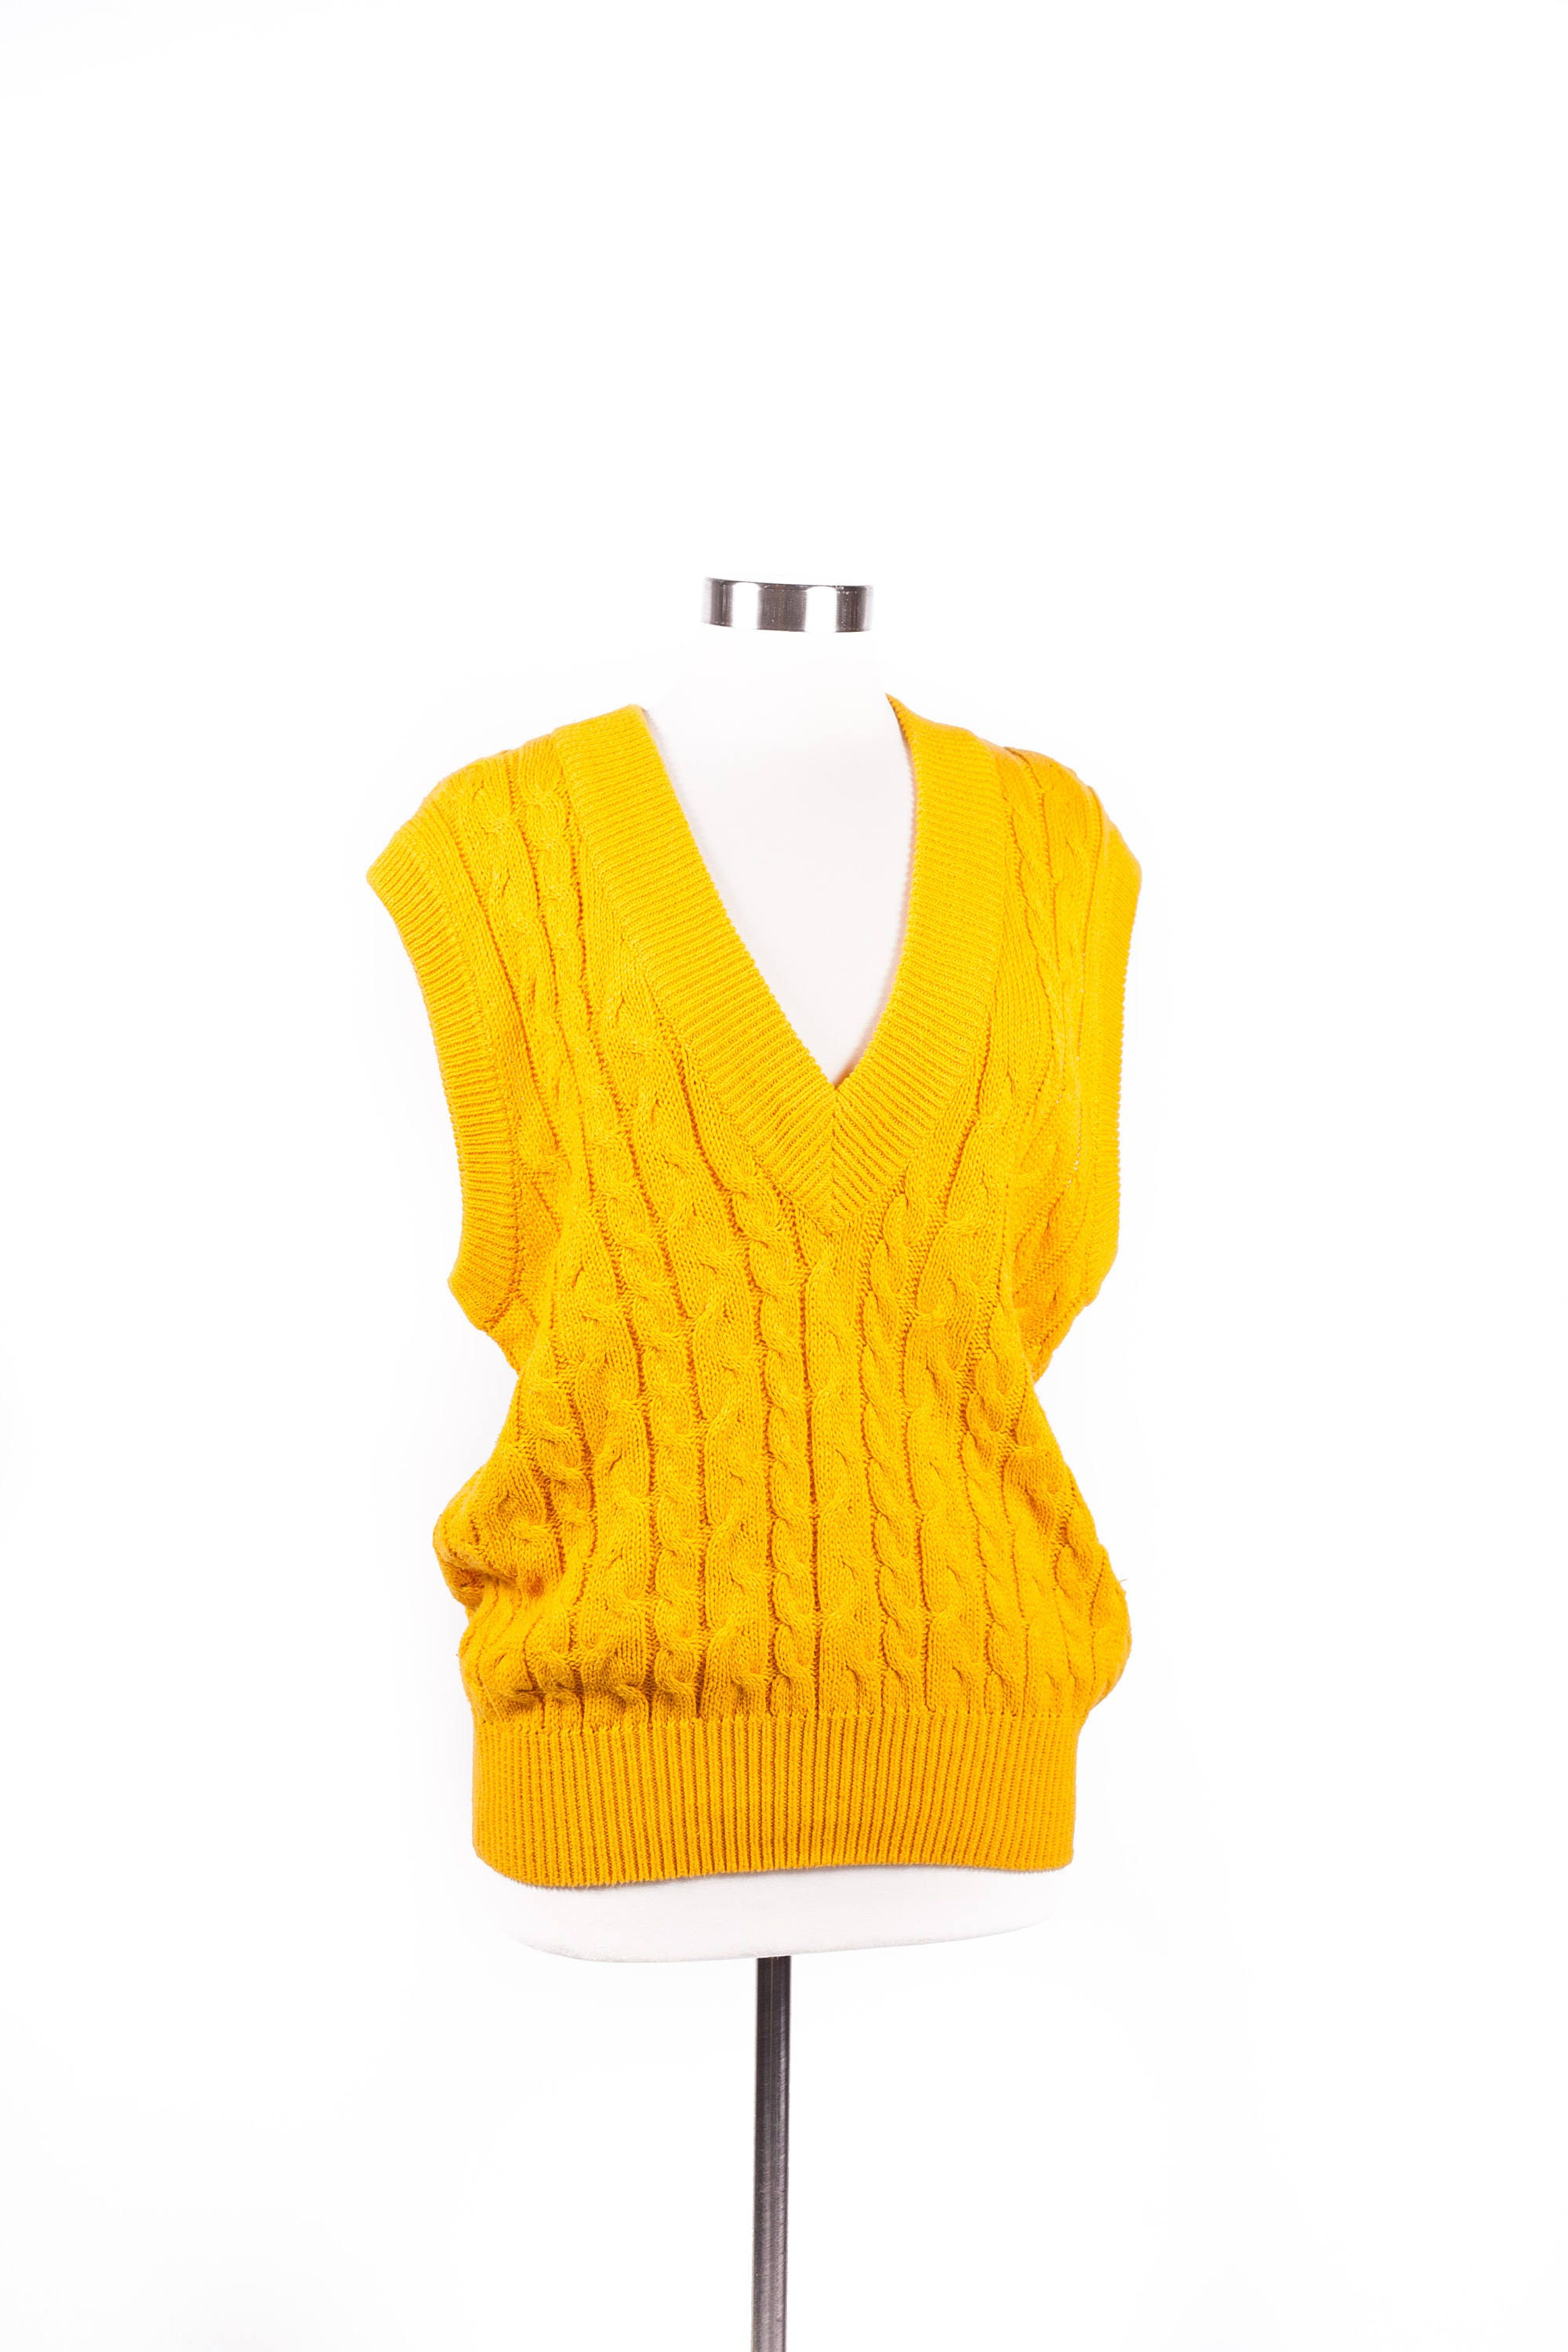 Unisex / Men's Large FORENZA Sweater Vest Marigold Yellow V-Neck ...